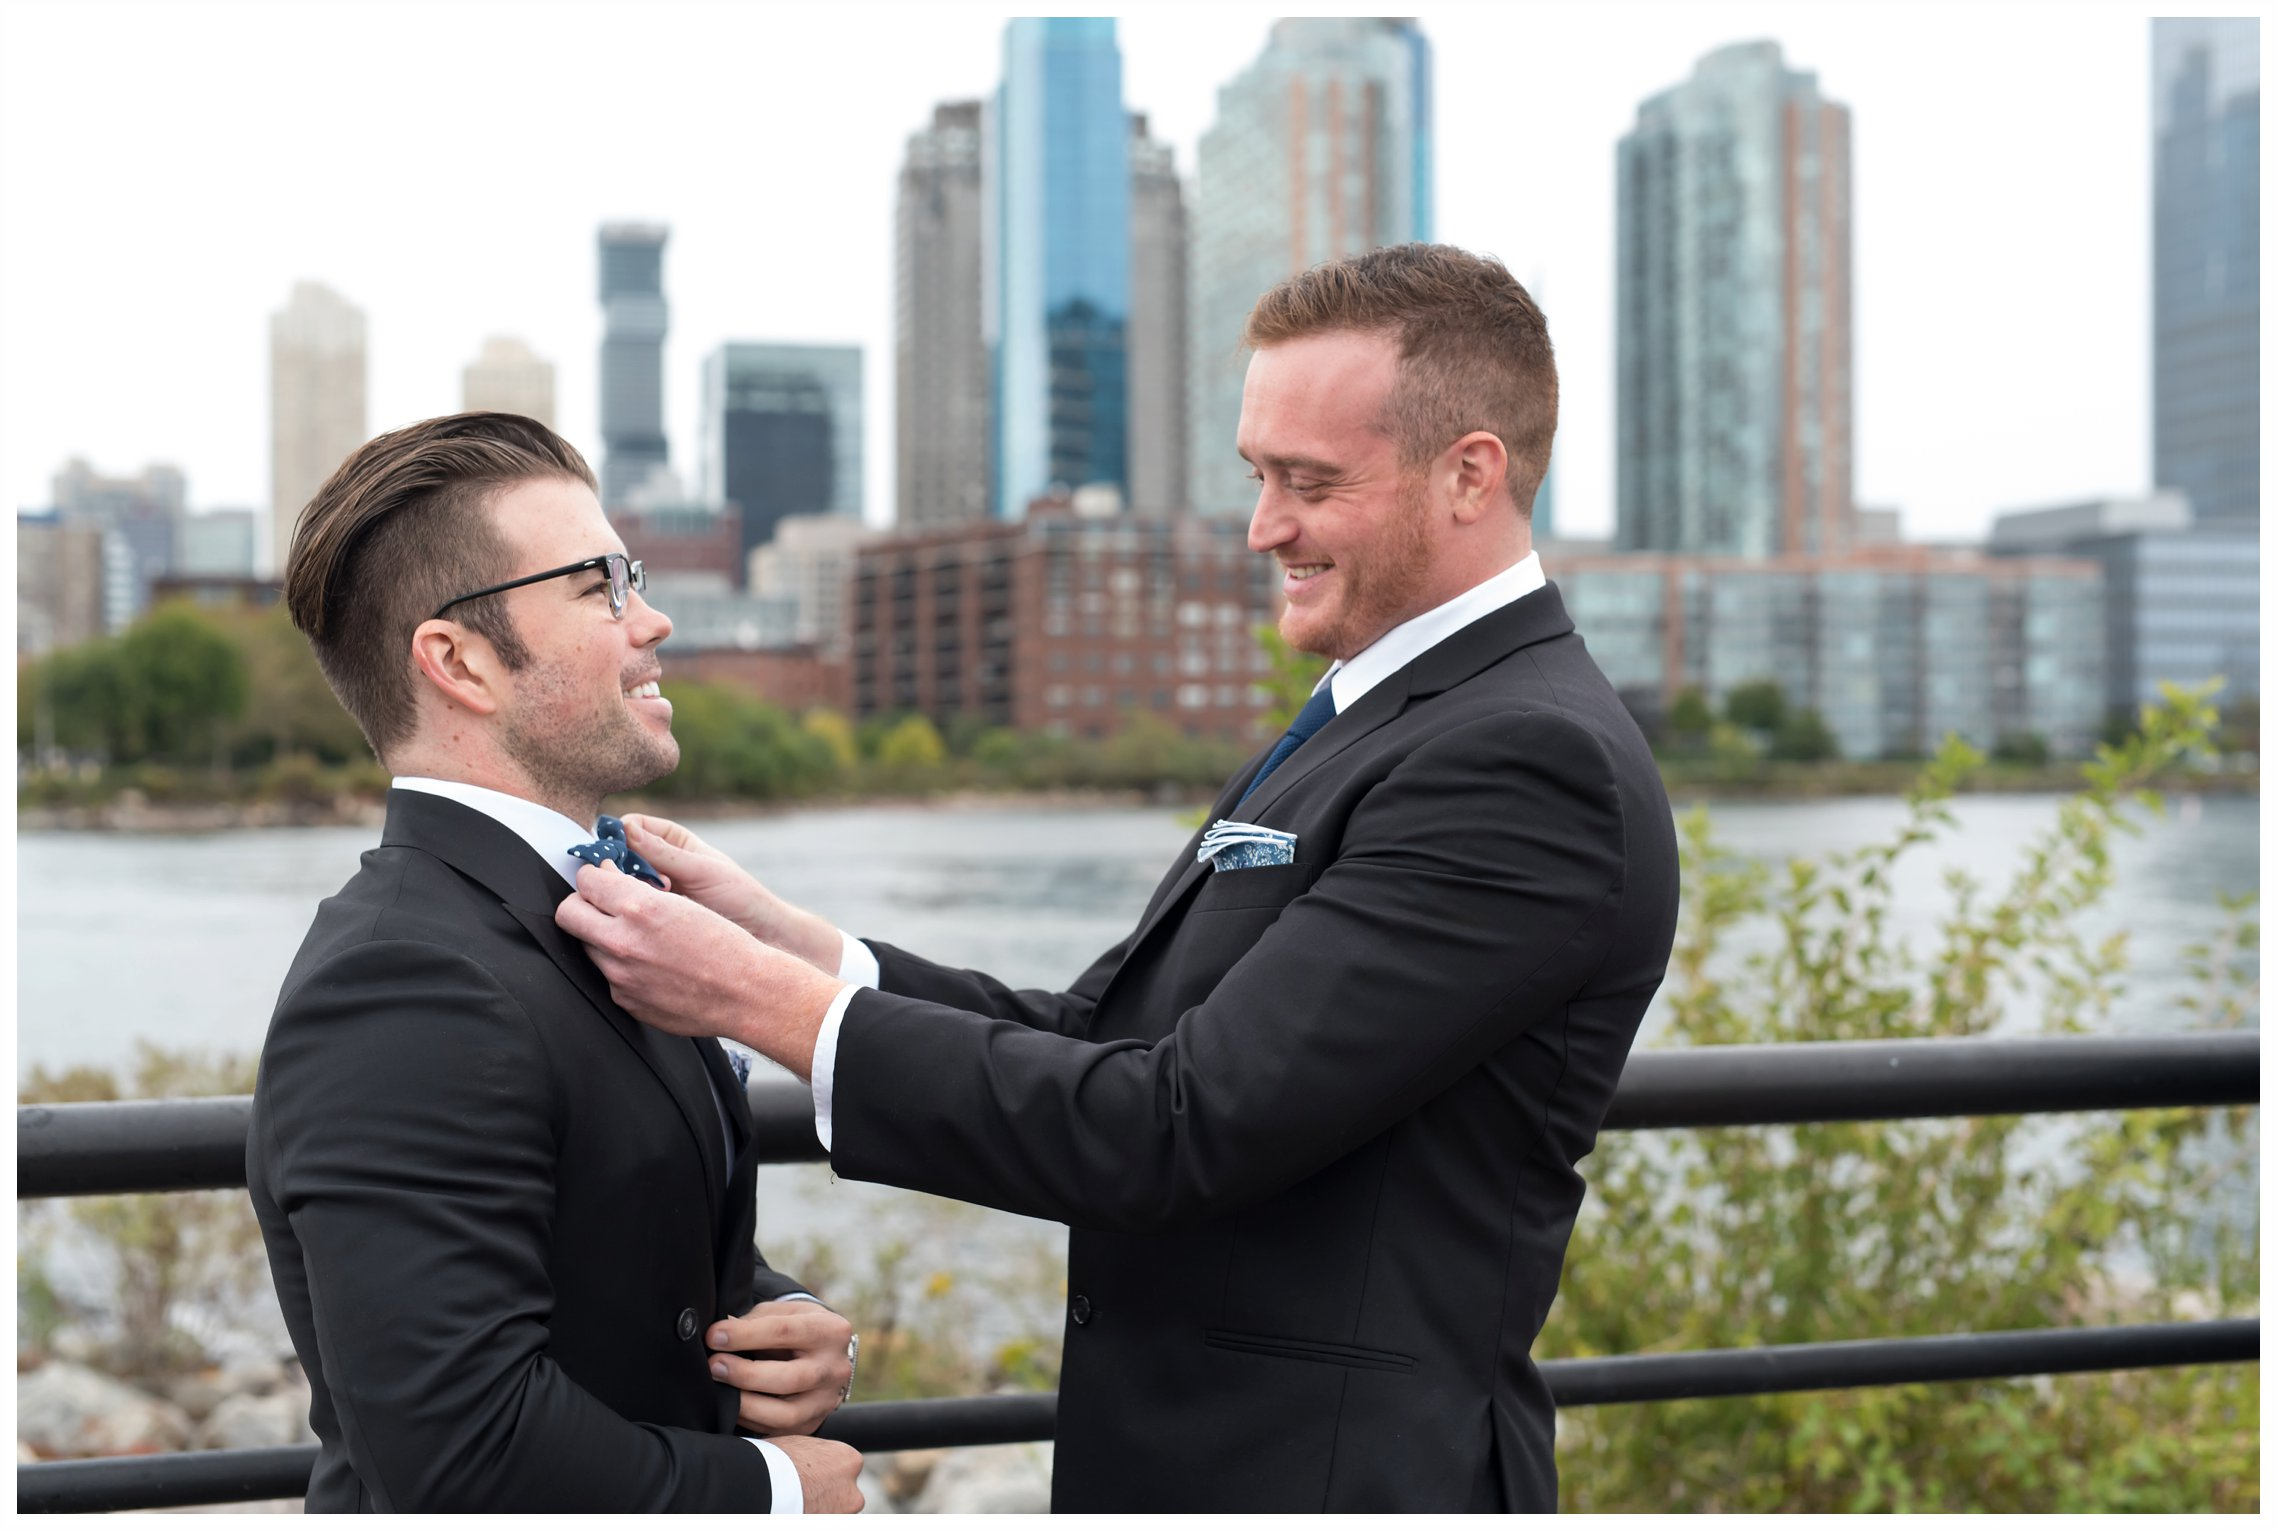 groom and best man for a wedding at the Liberty house restaurant in jersey city, new jersey